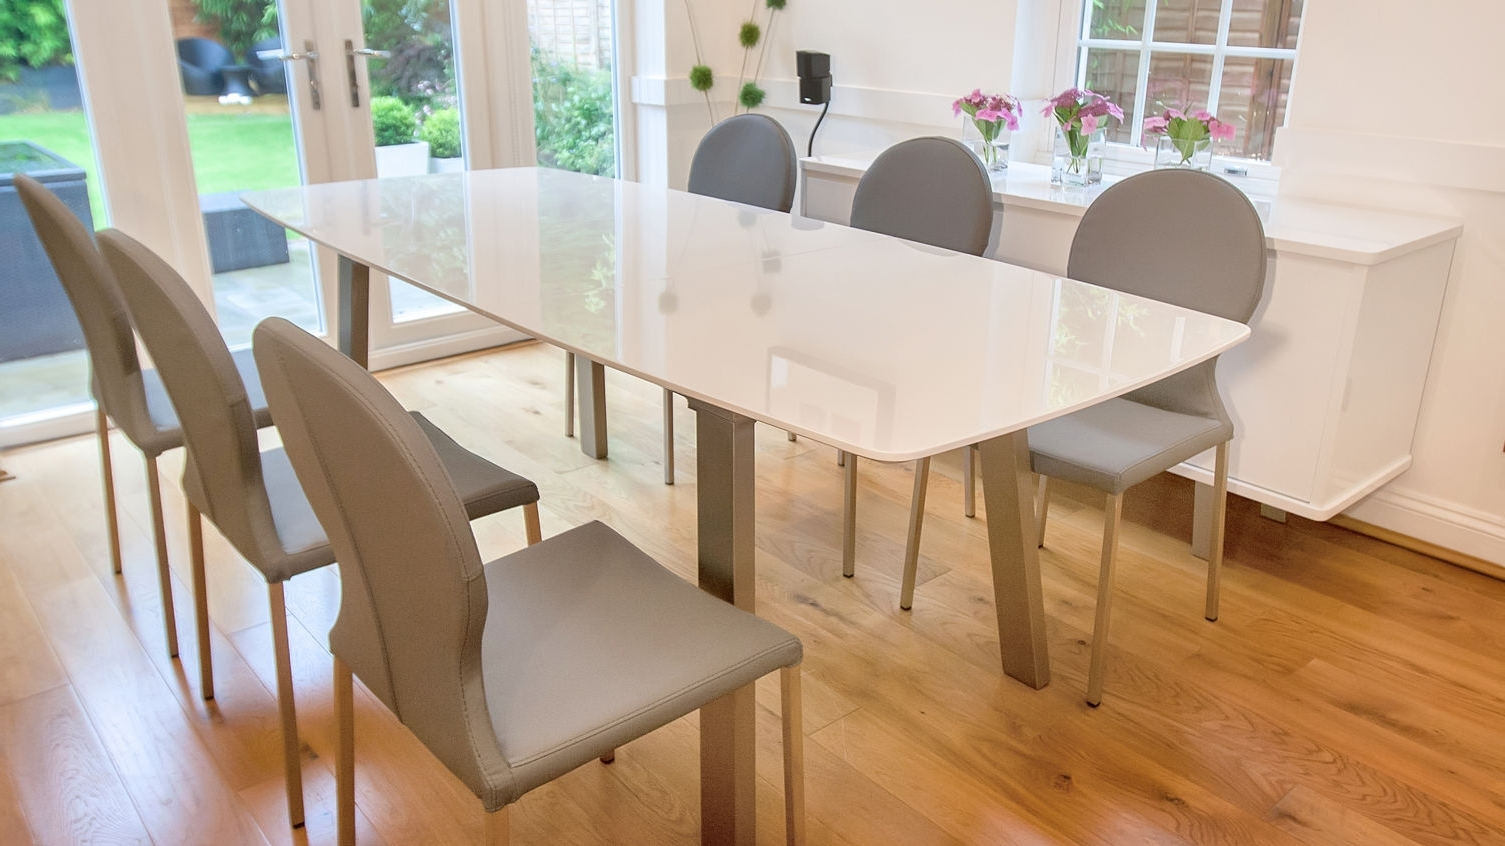 Well Known Extending Dining Room Tables And Chairs Dining Room Chair Slipcovers With Regard To Extending Dining Room Tables And Chairs (View 21 of 25)